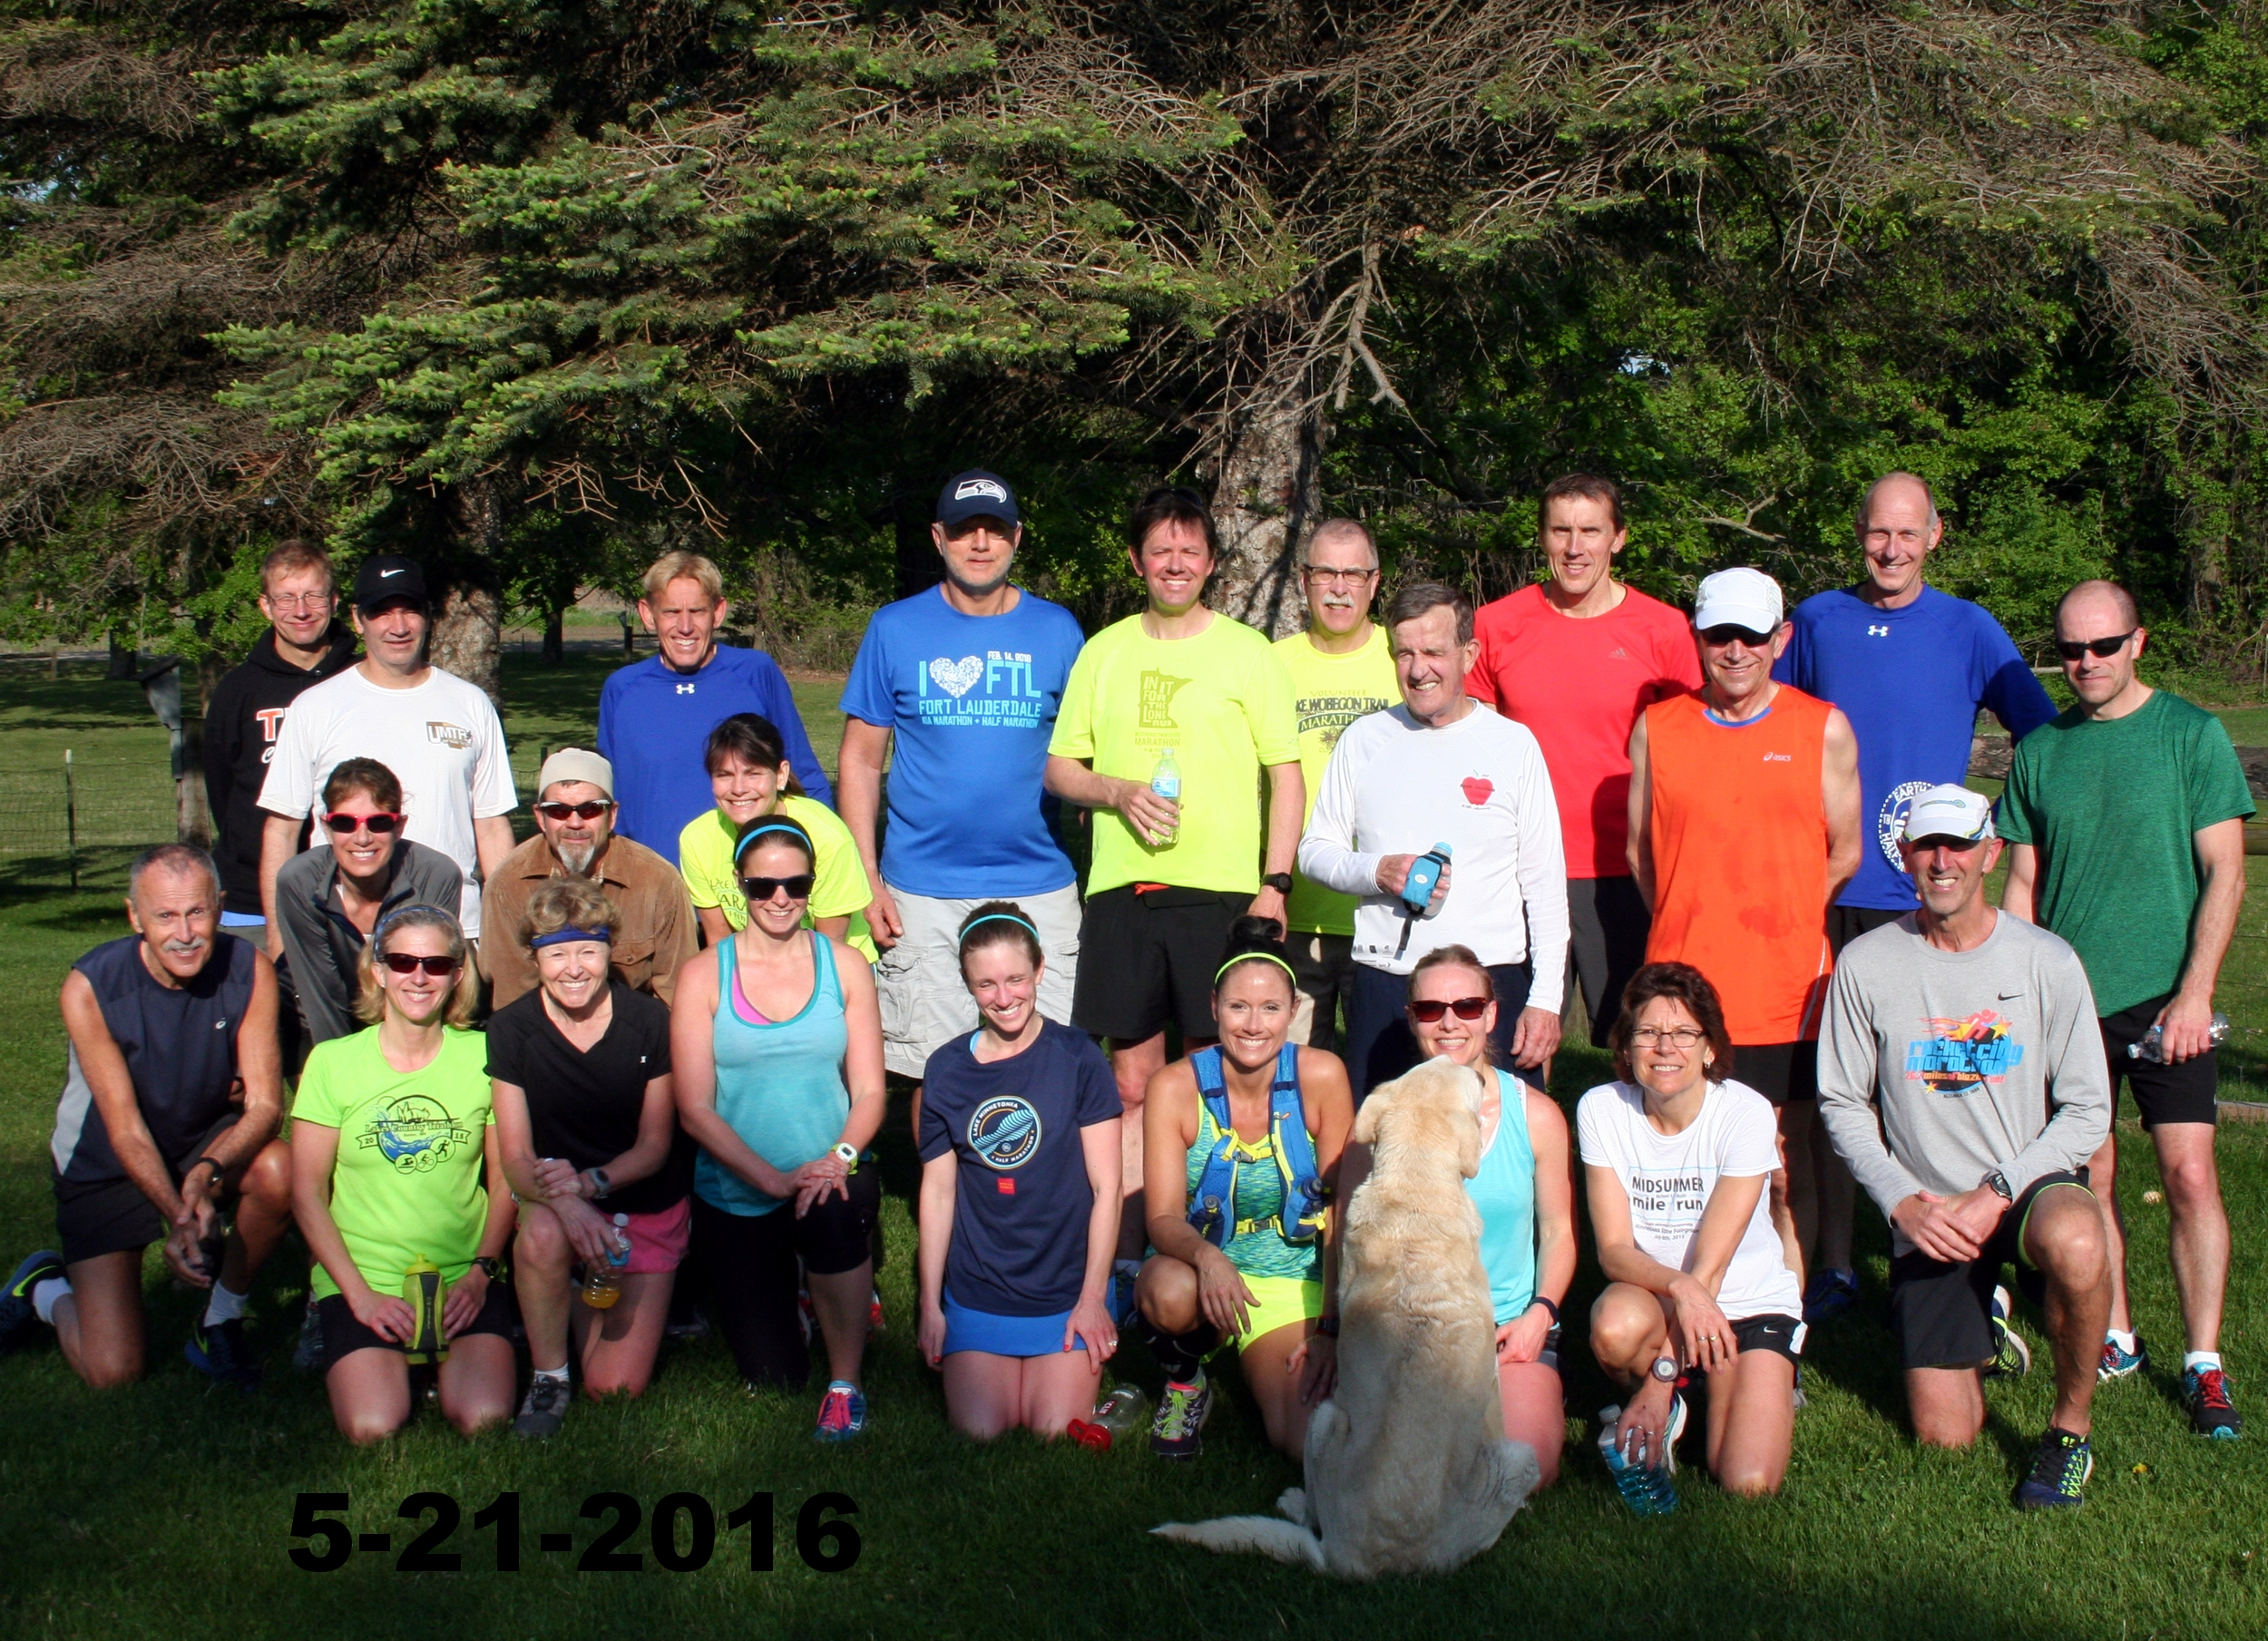 Breakfast Run 5-21-2016